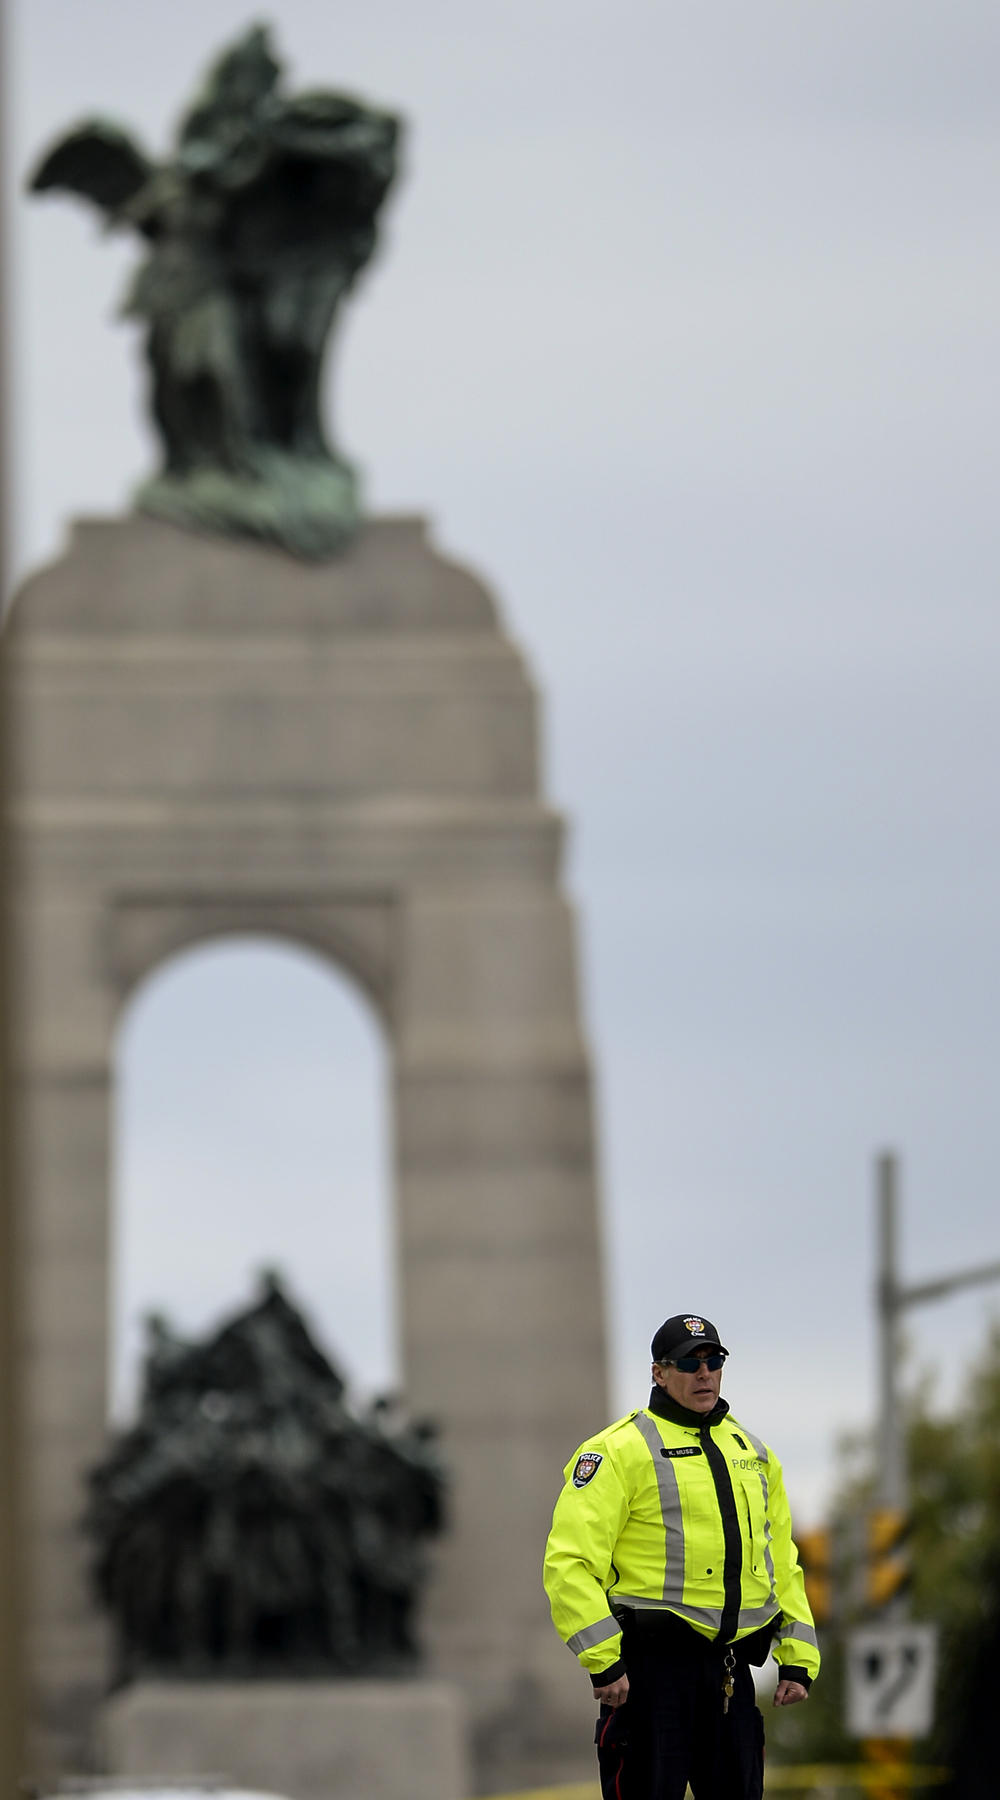 OTTAWA, Ont. (22/10/14) - A police officer stand directing traffic and pedestrians away from the scene of a brazen early morning shooting at the National War Memorial in Ottawa, Ont. on Wednesday Oct. 22, 2014. Photo by Andrew Lahodynskyj